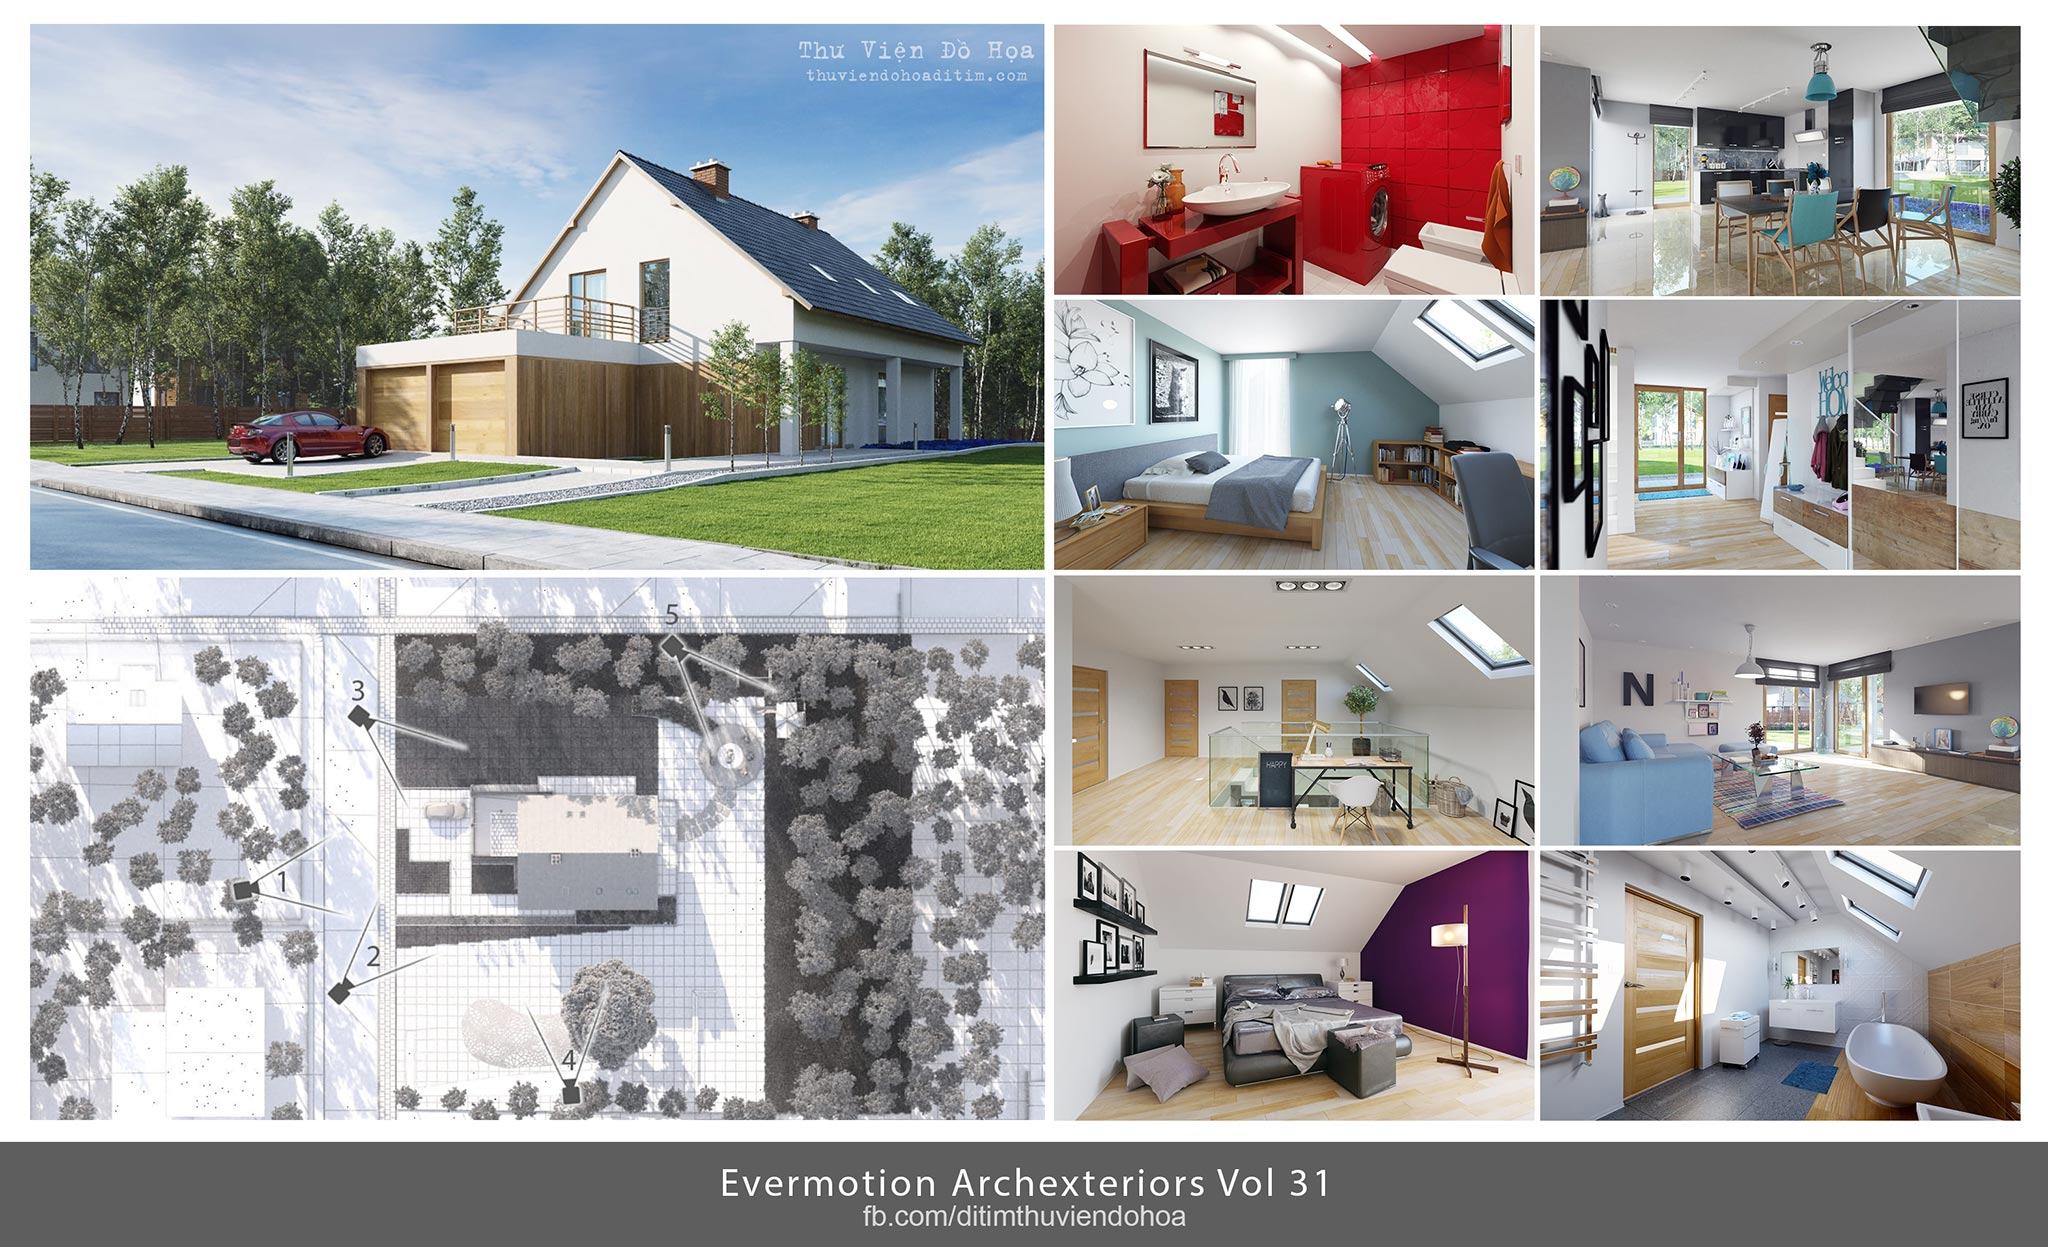 Evermotion Archexteriors Vol 31